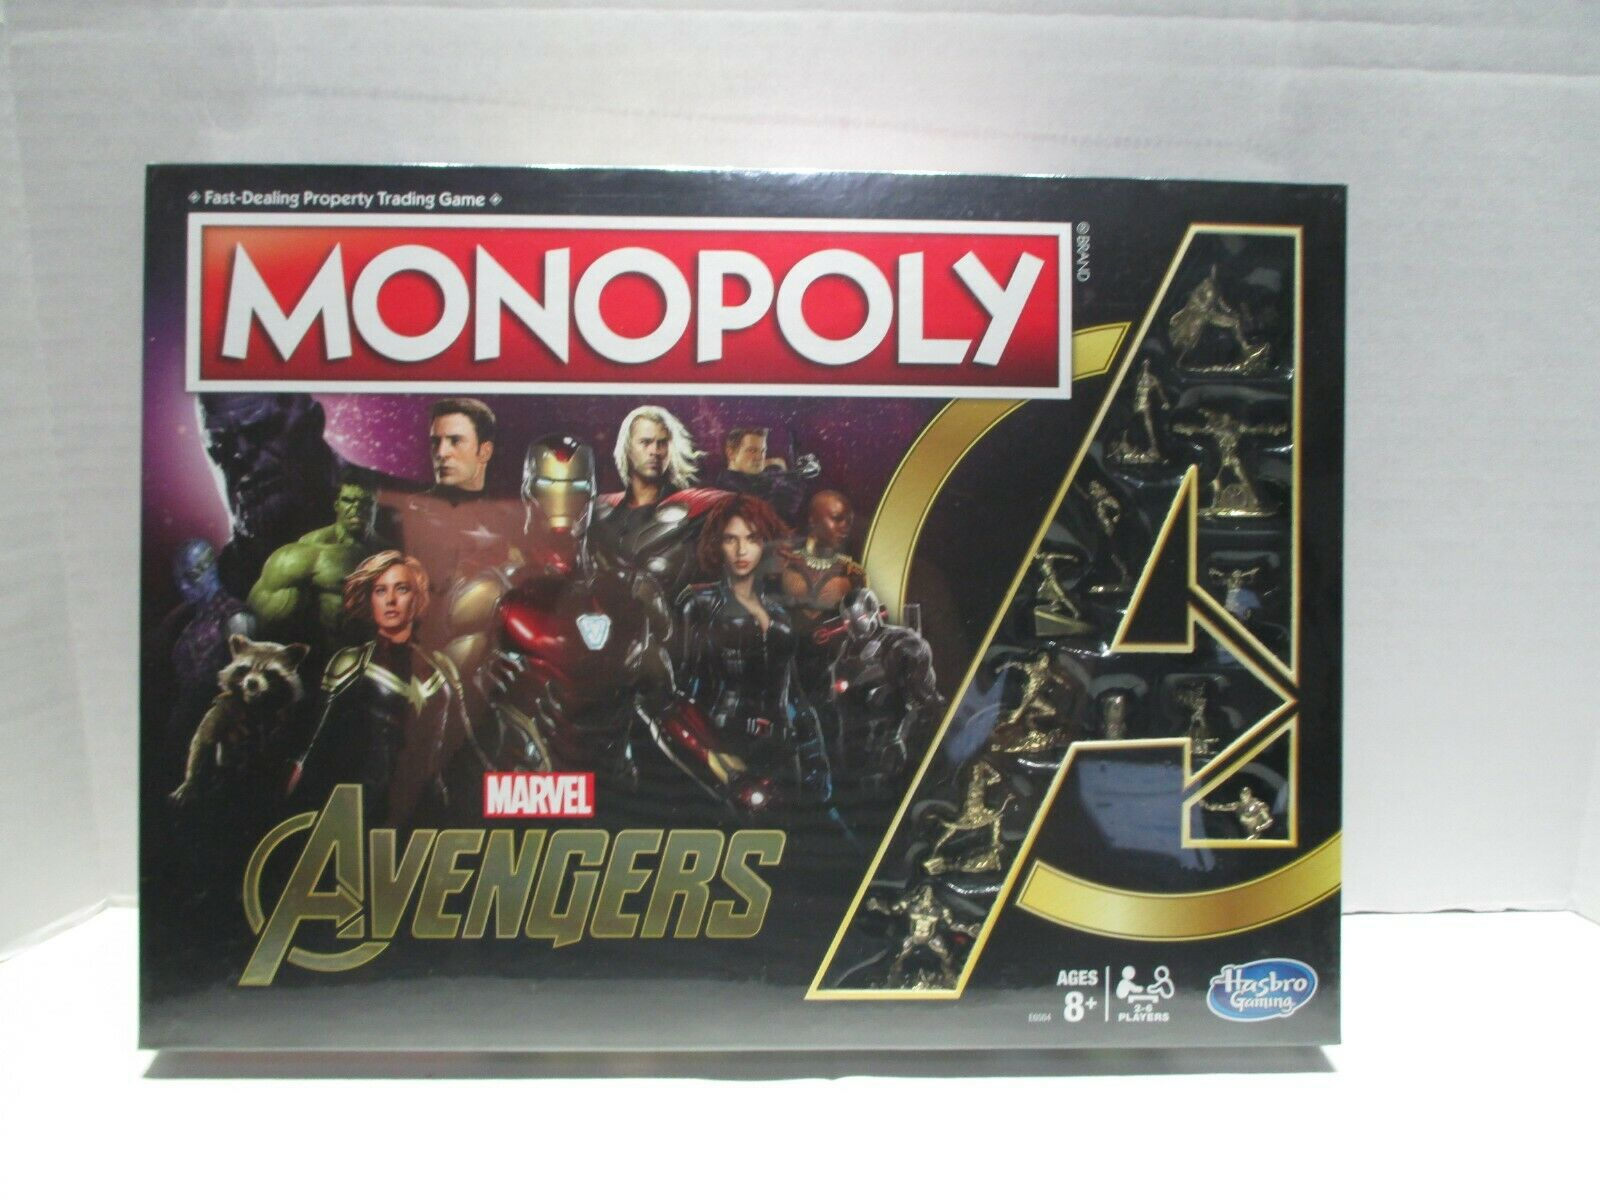 Marvel Avengers Monopoly Hasbro gold Tokens First Ten Years 2018 630509850587